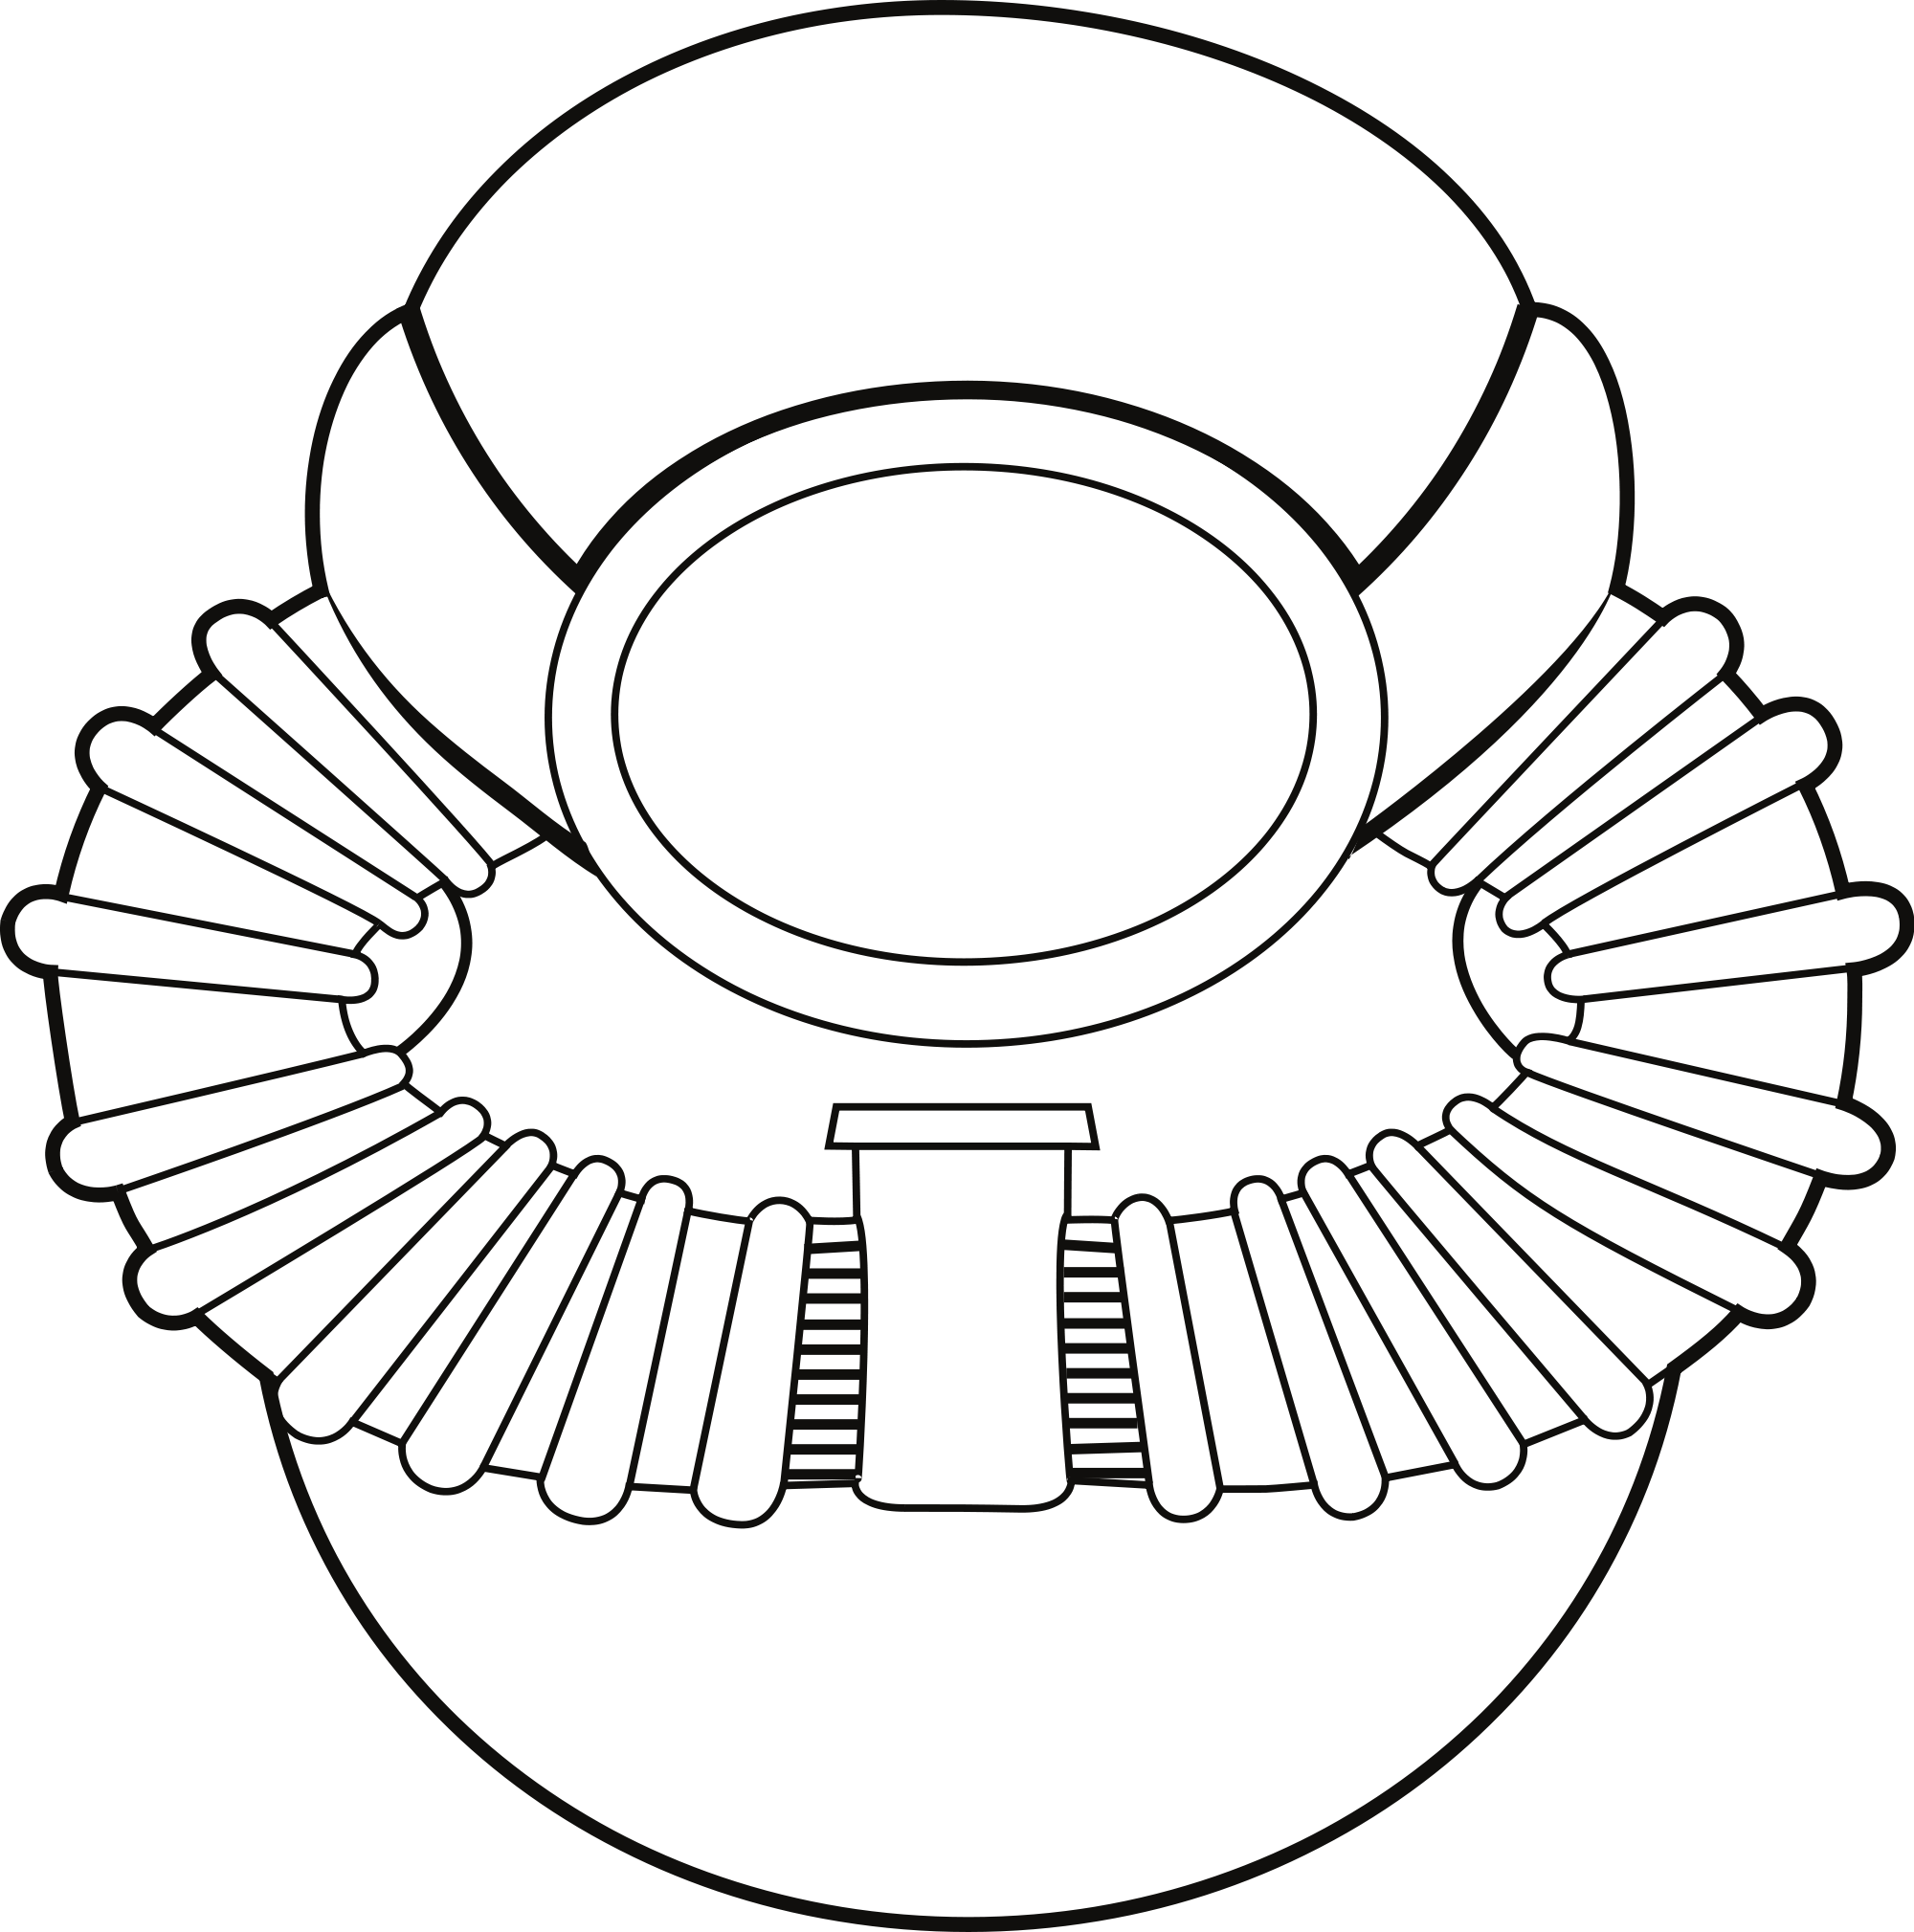 Badge drawing bubble. File usaf occupational scuba